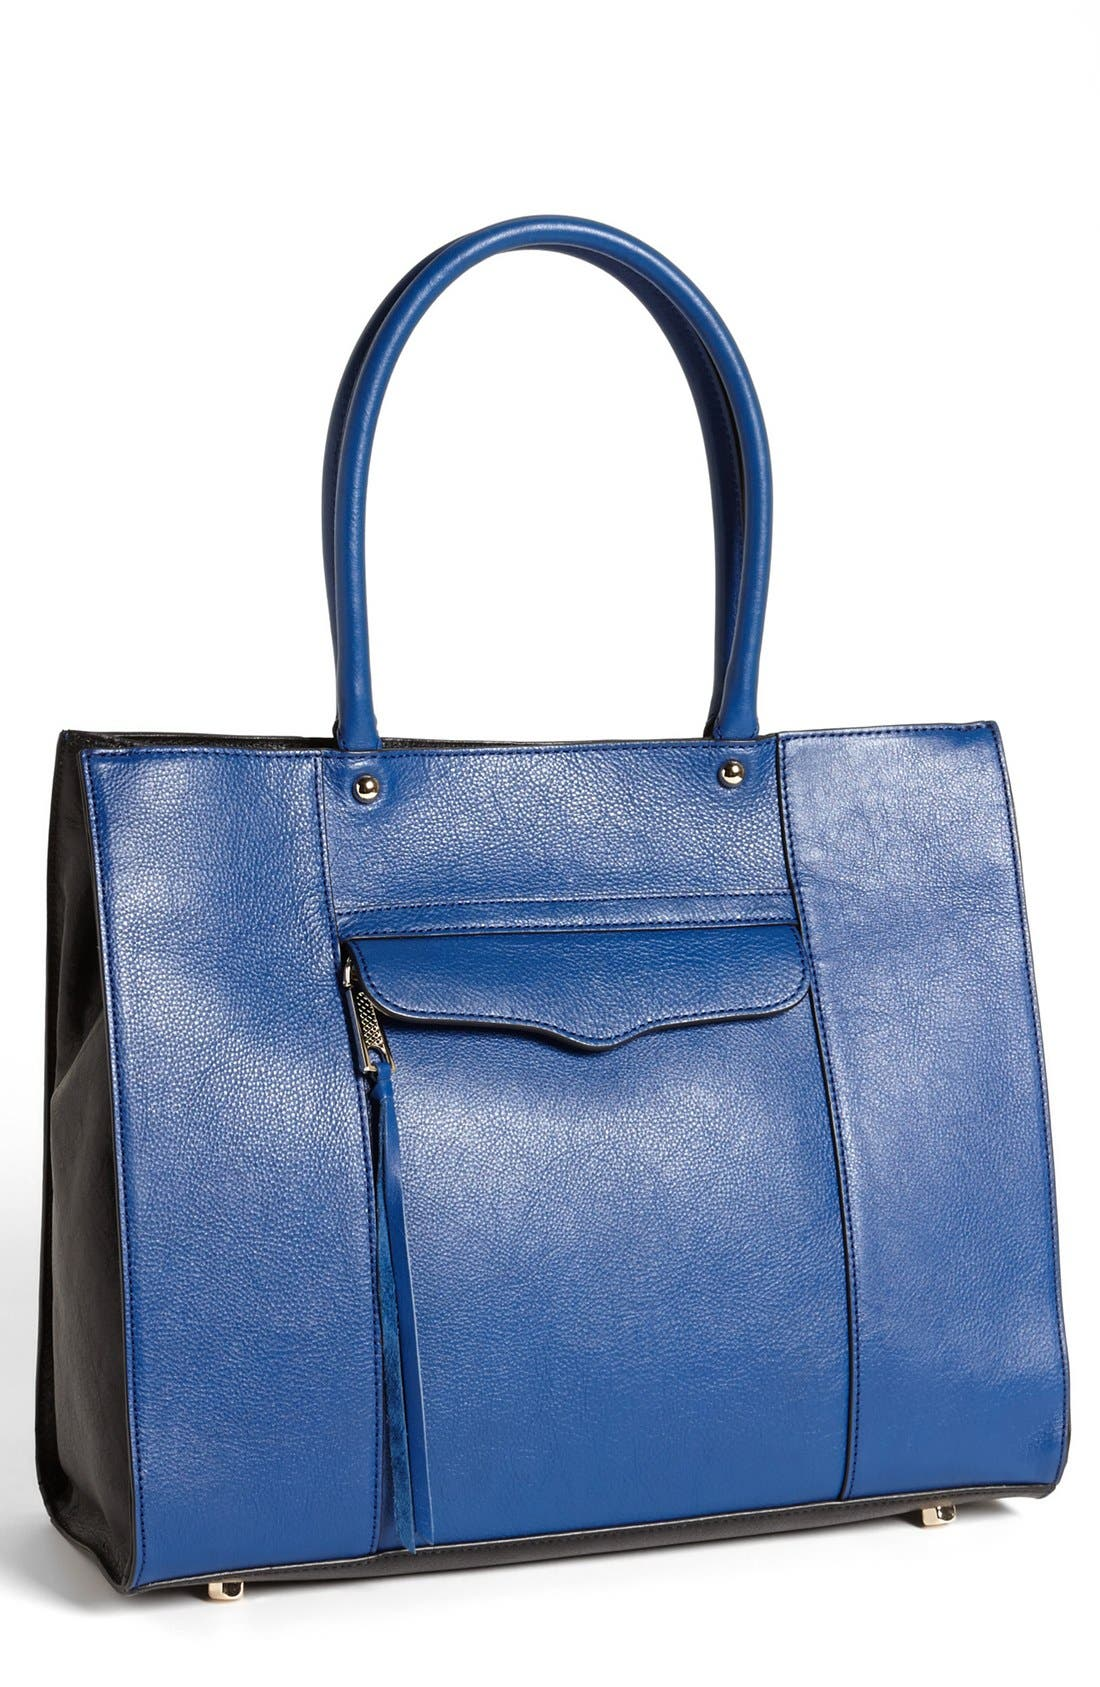 Alternate Image 1 Selected - Rebecca Minkoff 'Medium MAB' Colorblock Tote